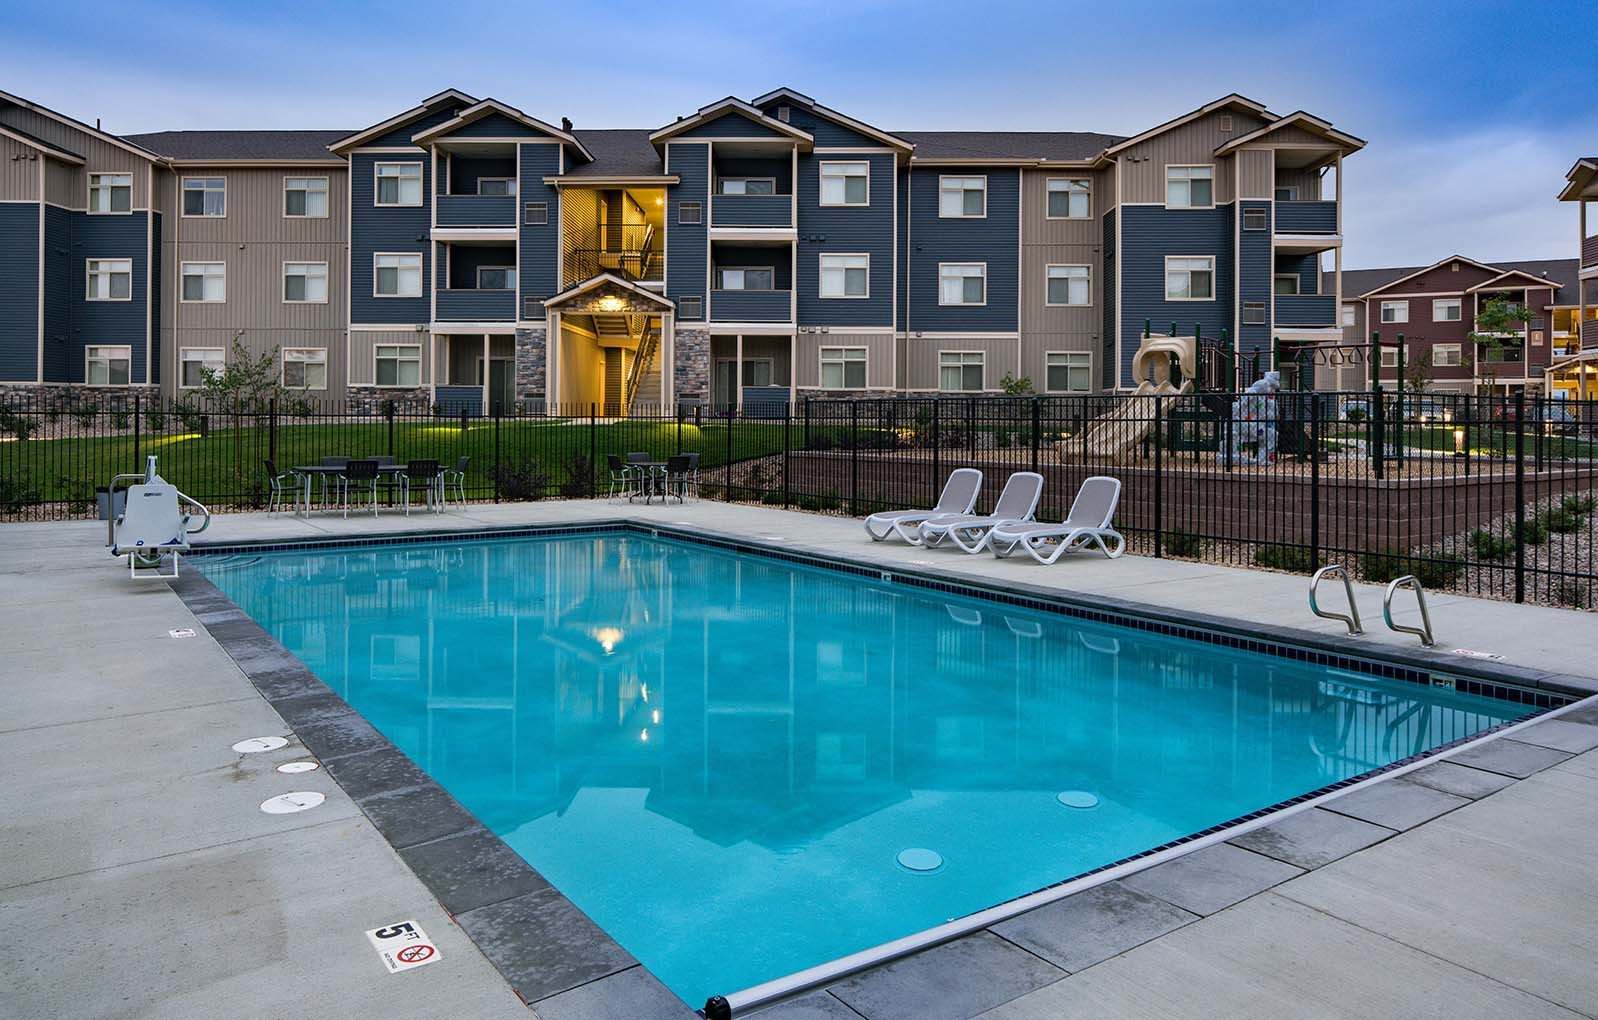 Copper trail apartments in olympia wa - Evergreen high school swimming pool ...